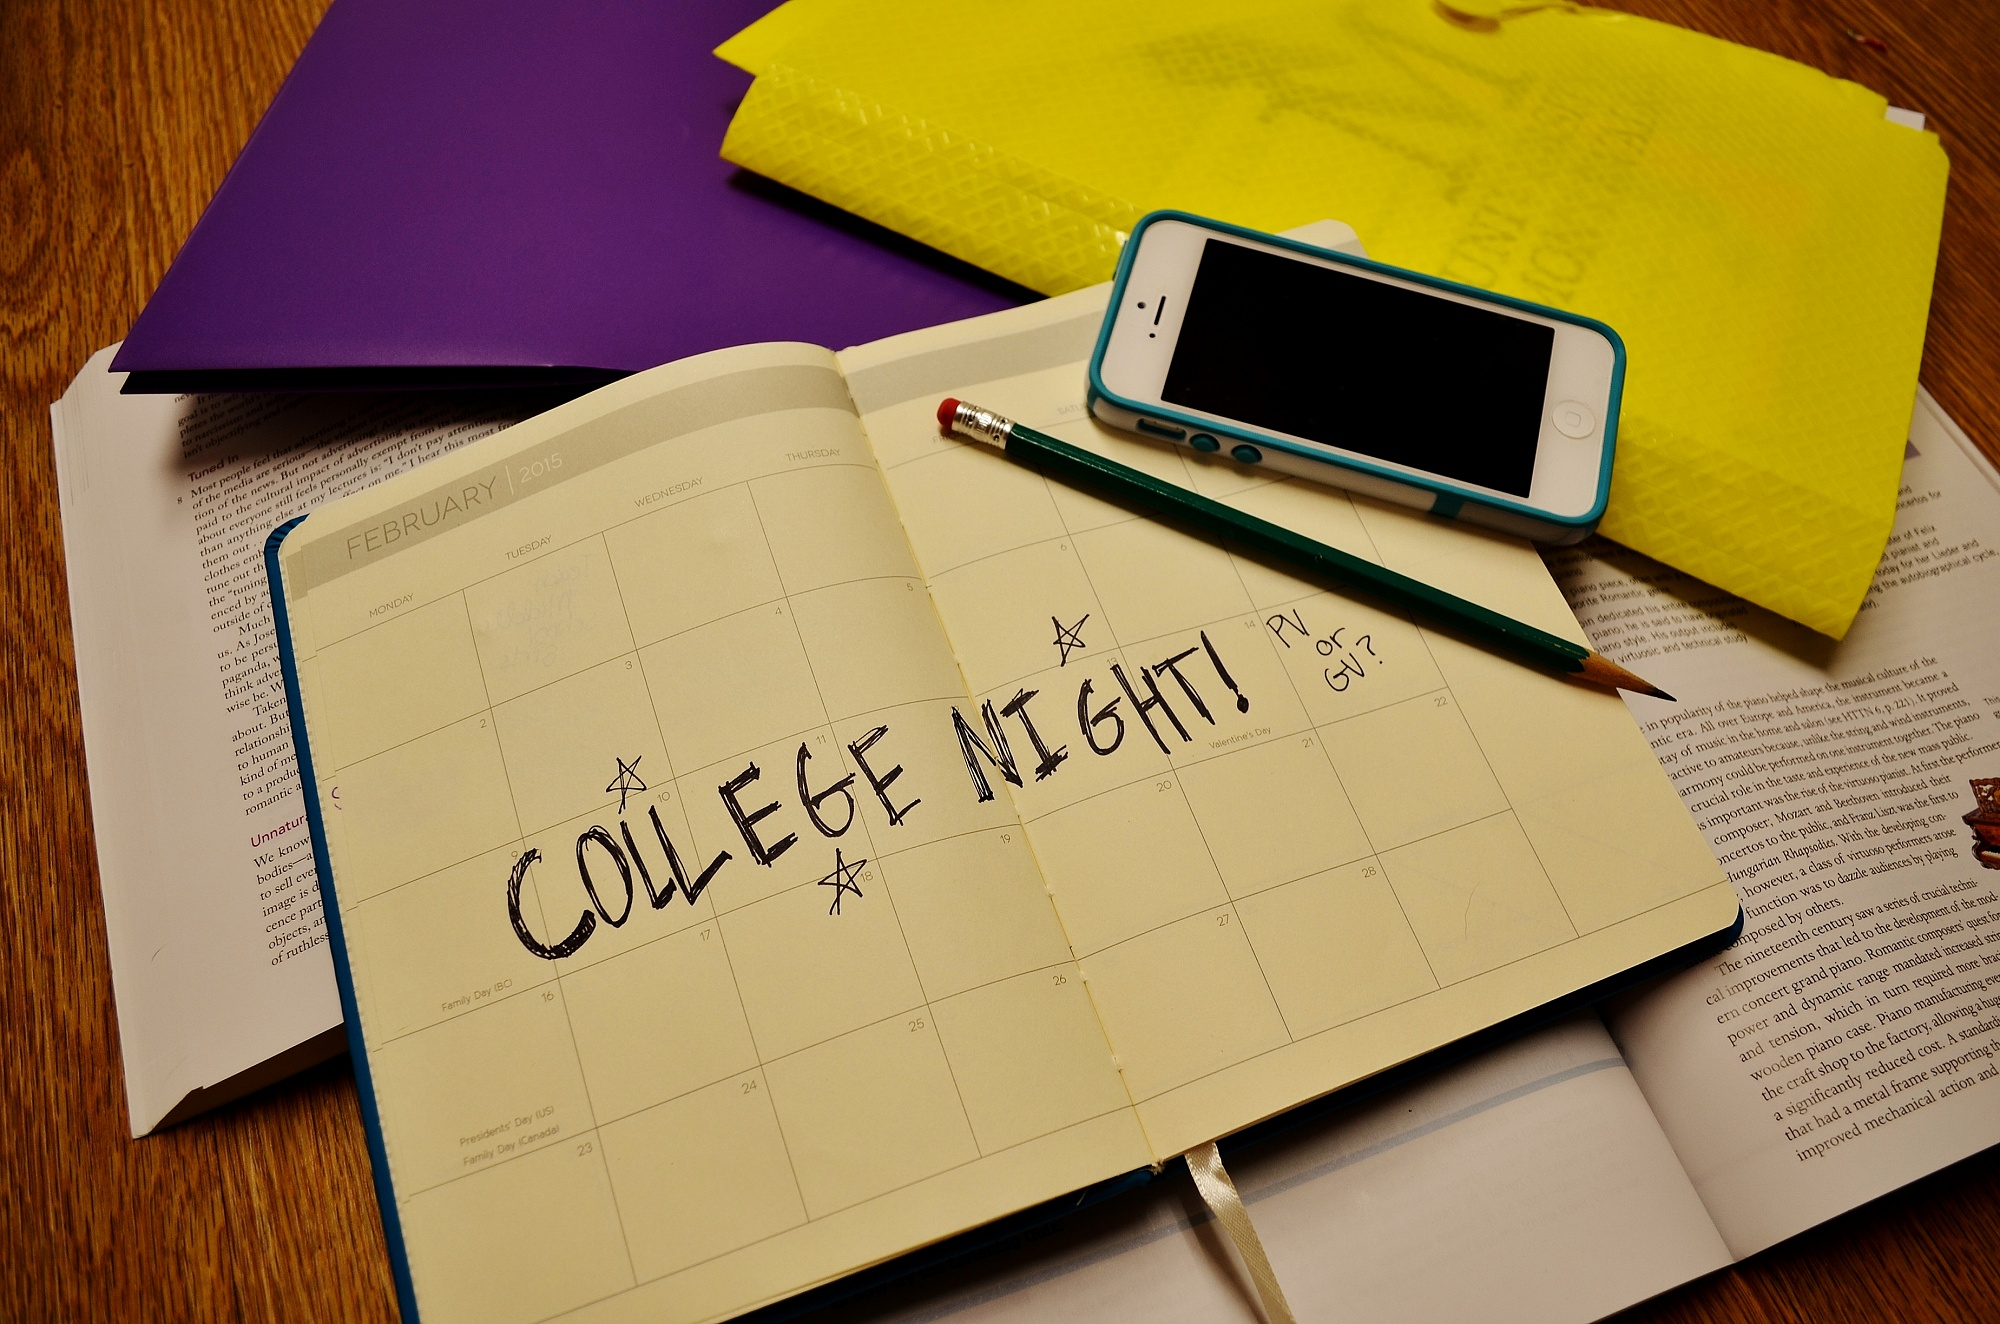 College Night sighs: A look at homecoming stress